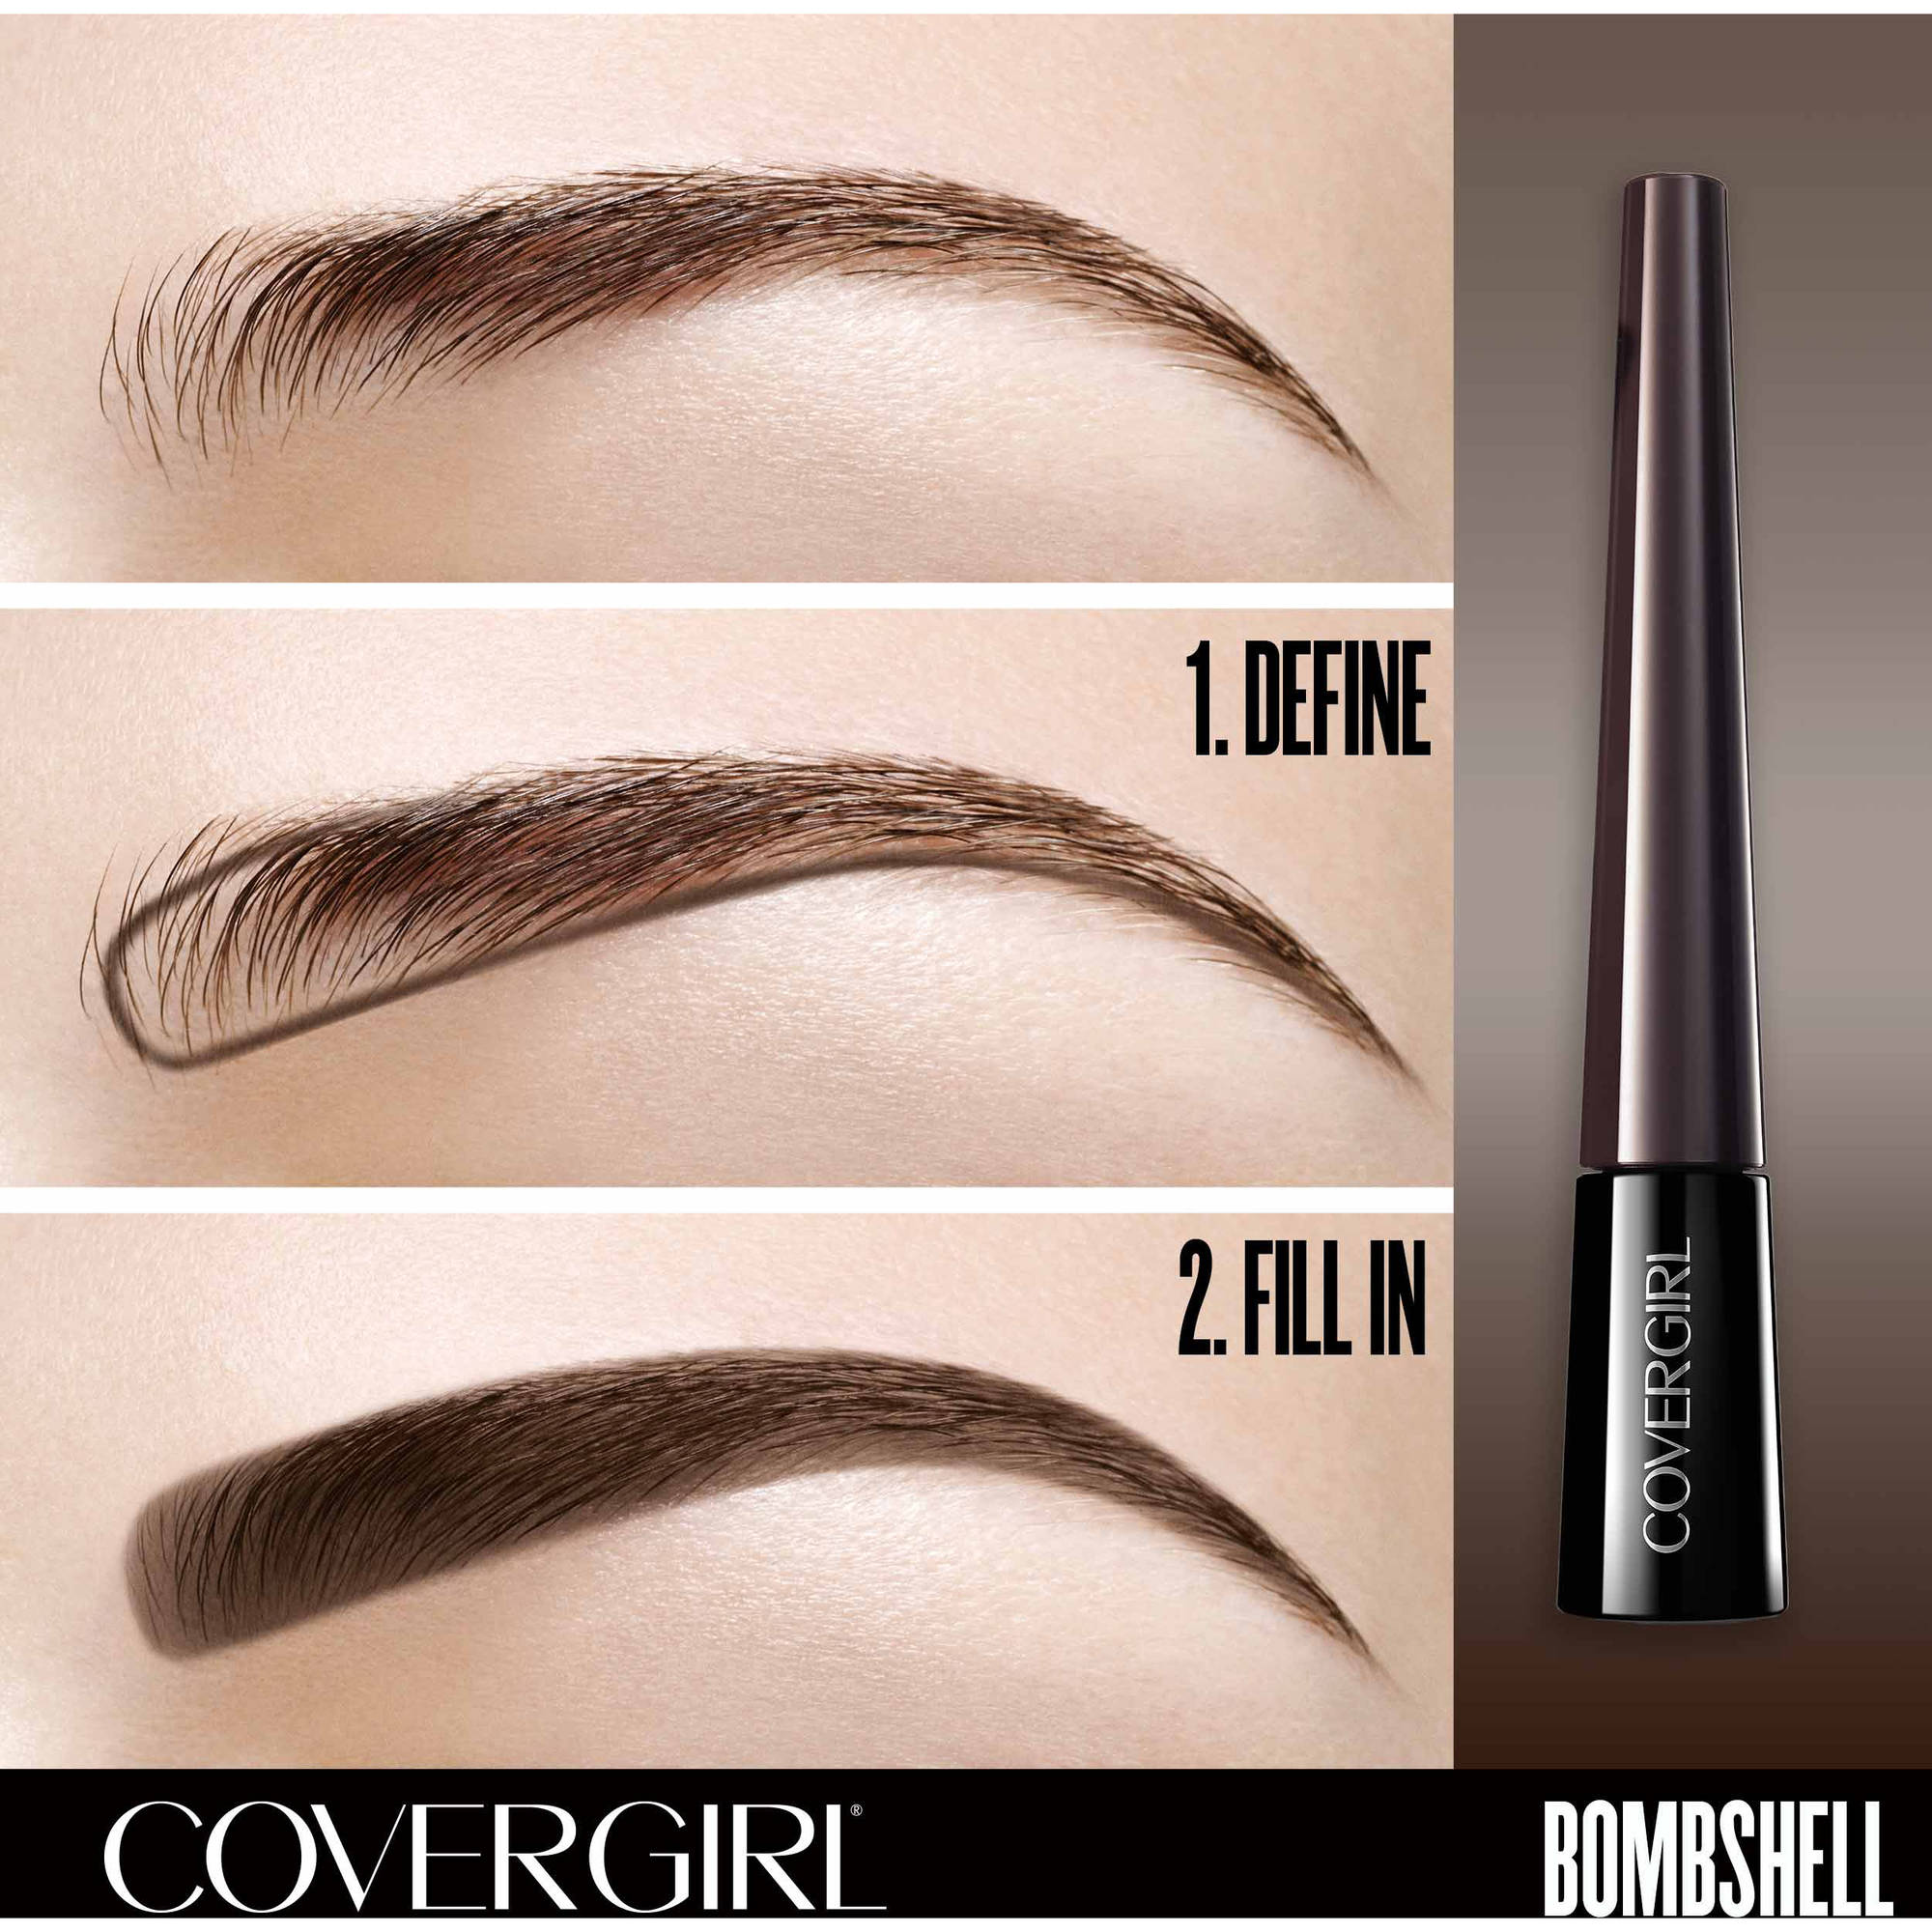 Covergirl Bombshell Pow Der Brow Liner Eyebrow Powder Dark Brown